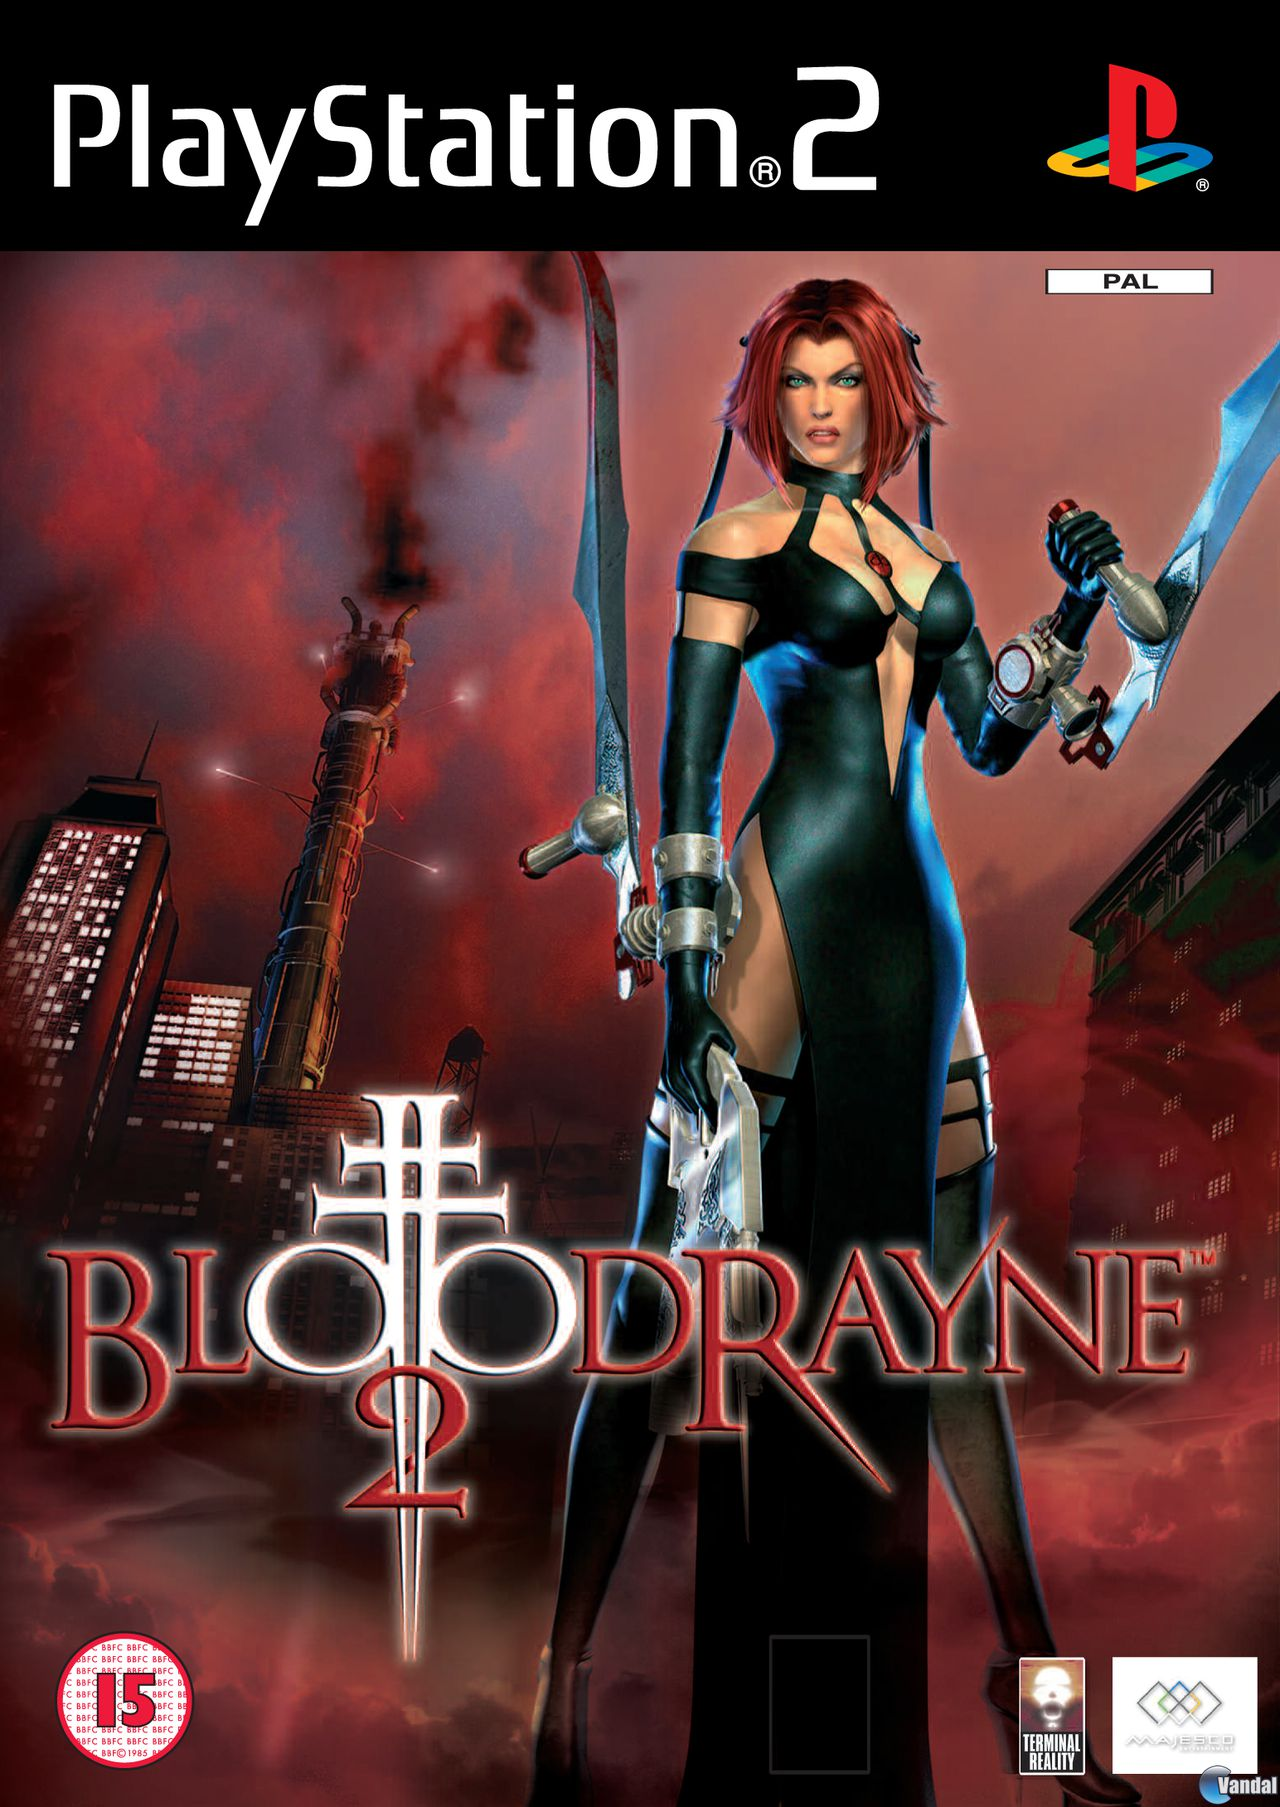 Bloodrayne 2 full nude cheat ps2 porncraft tube